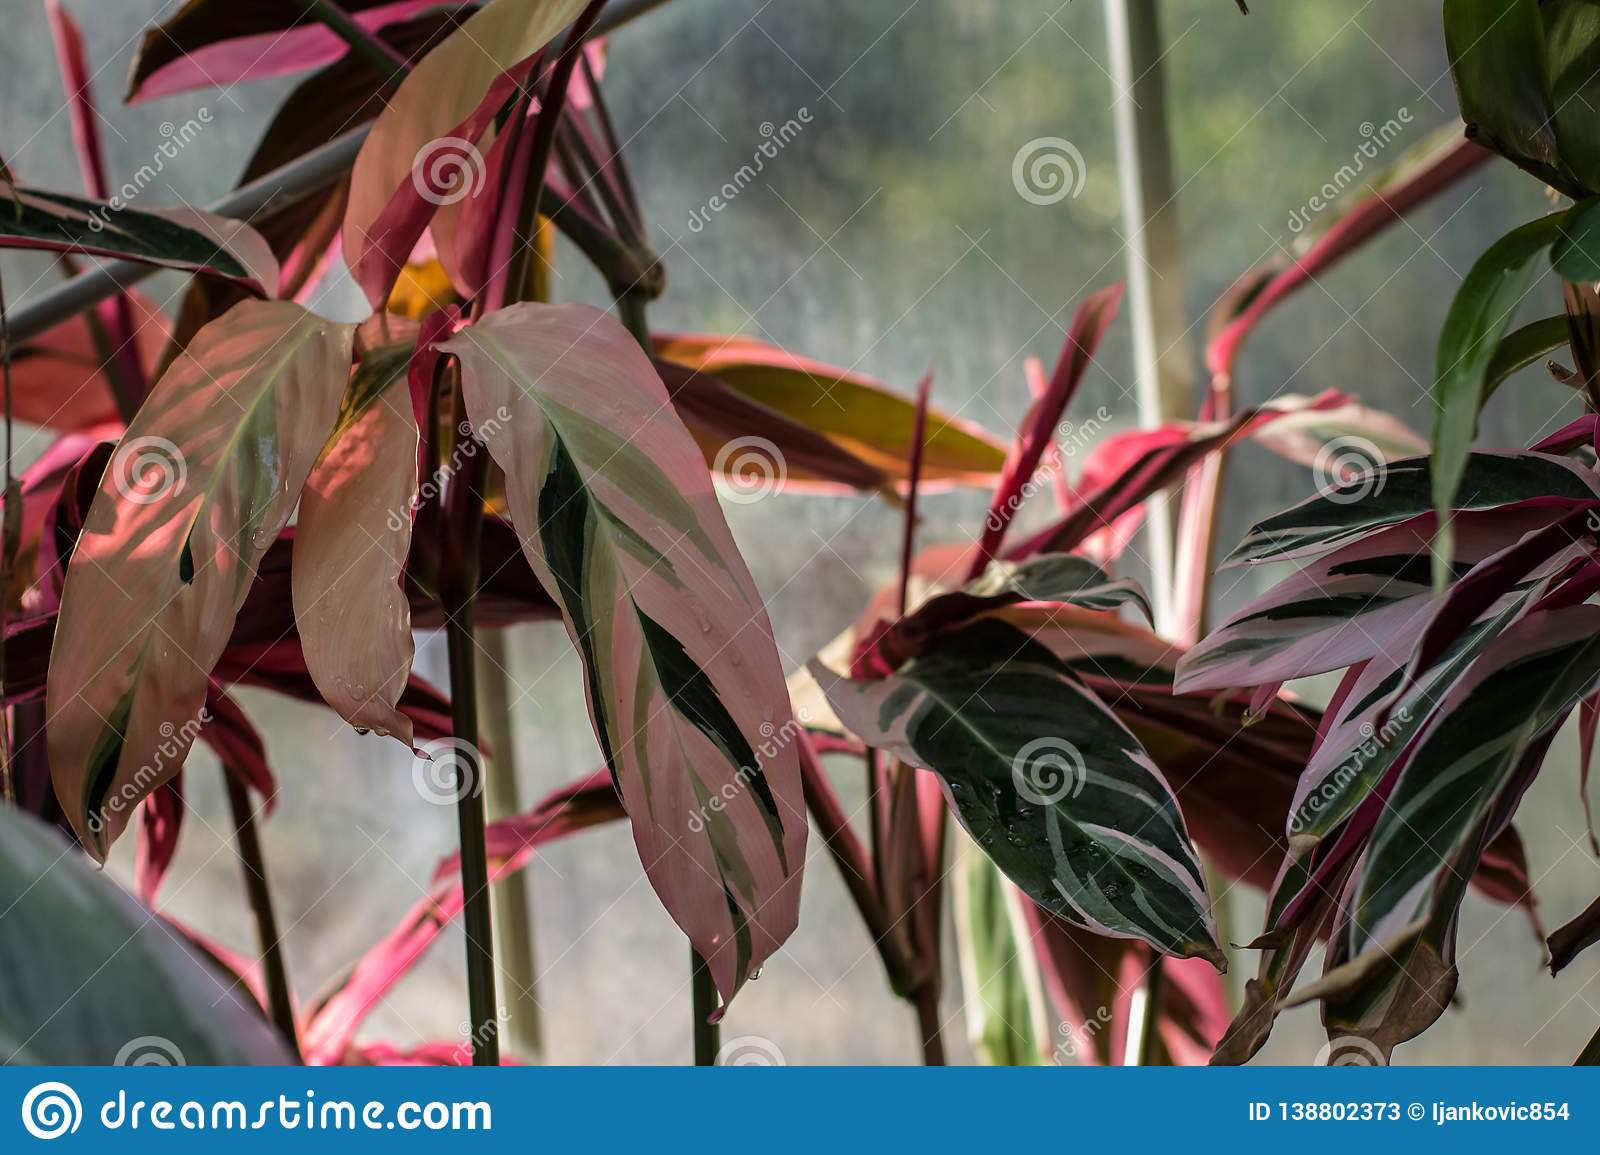 Colorful Leaves Of Stromanthe Sanguinea Stock Image Image Of